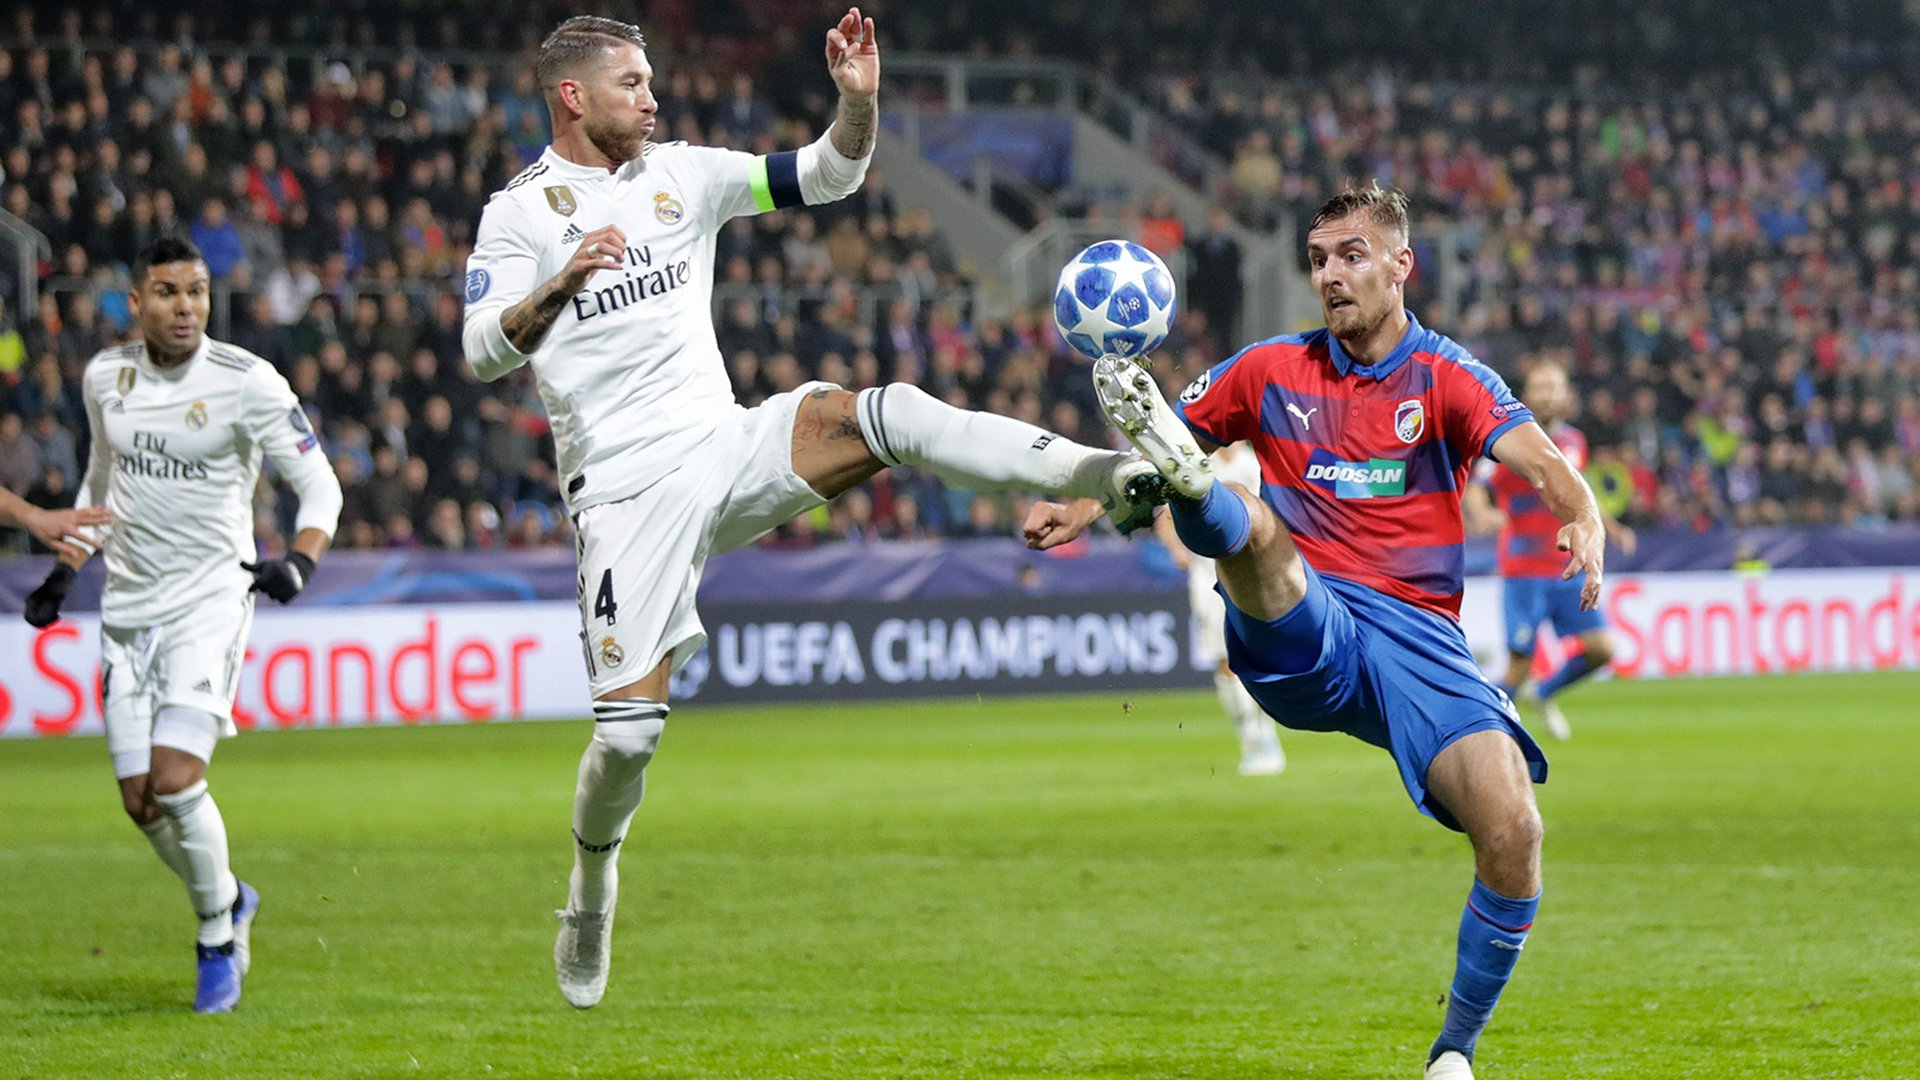 Real Madrid romped to a 5-0 victory against Viktoria Plzeň